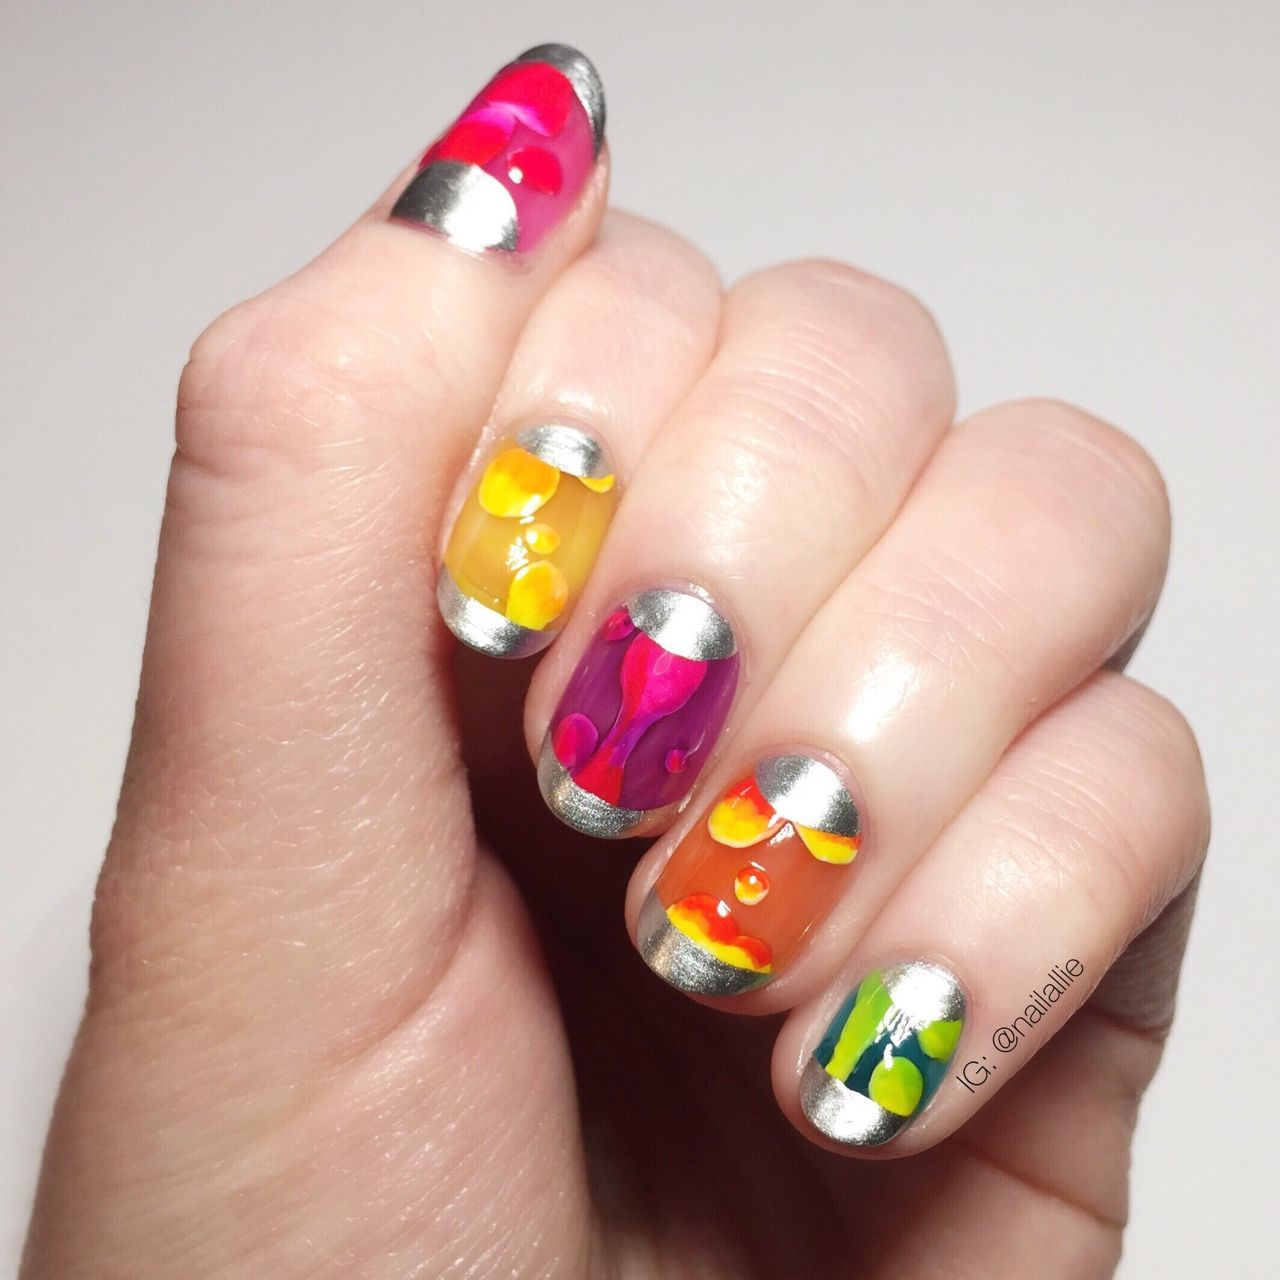 Pin by Sulfras on Nails | Pinterest | Lava lamp, Colourful nails and ...